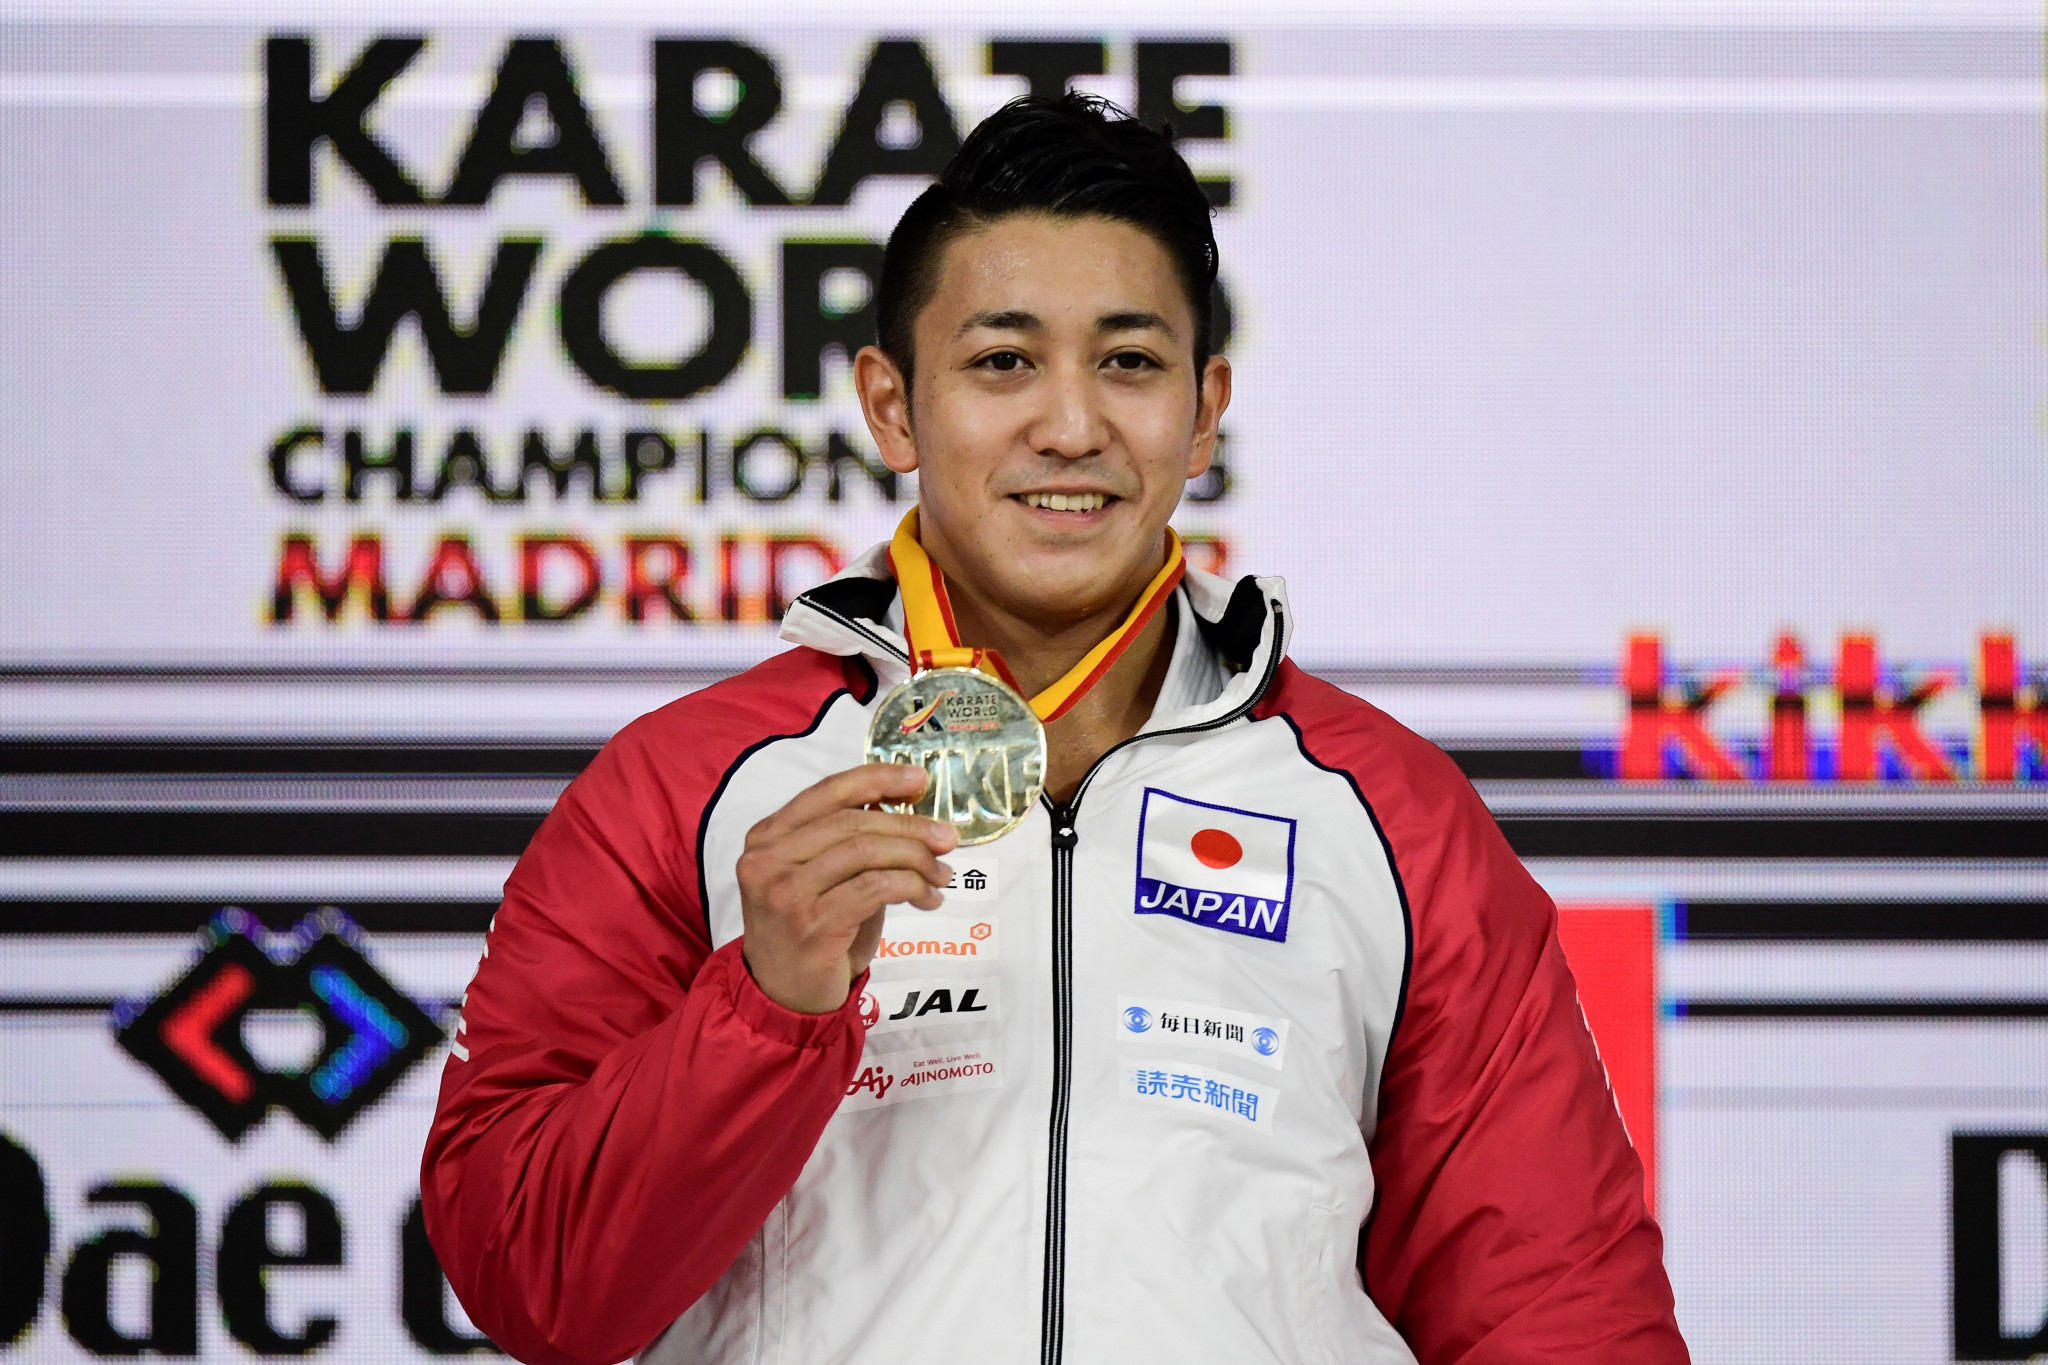 Karate world champion Kiyuna contracts coronavirus as cases rise in Japan